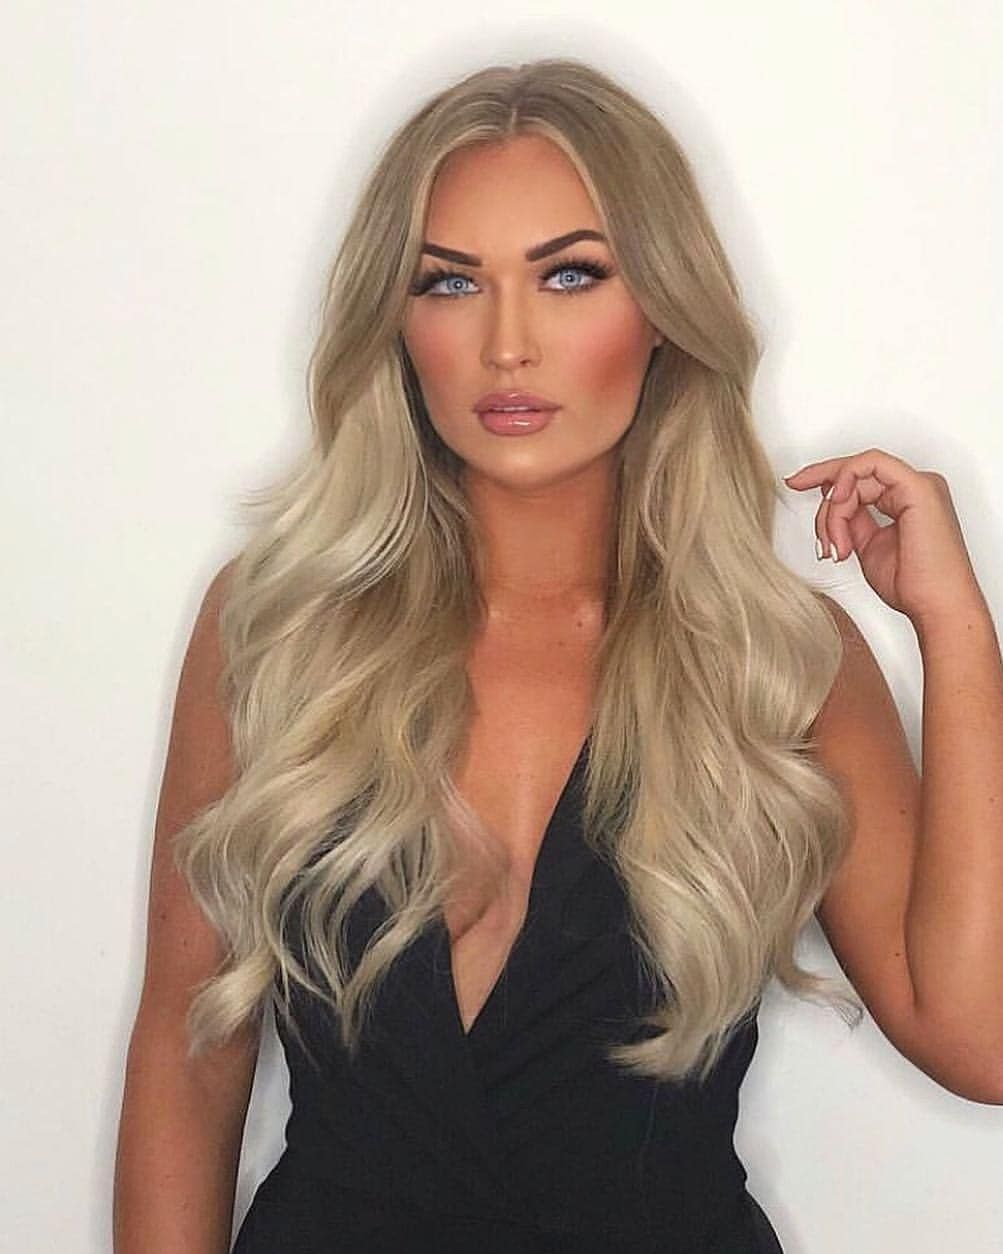 Beauty Works Hair Extensions Beauty Worksonline Instagram Photos And Videos Beauty Works Hair Extensions Beauty Works Beauty